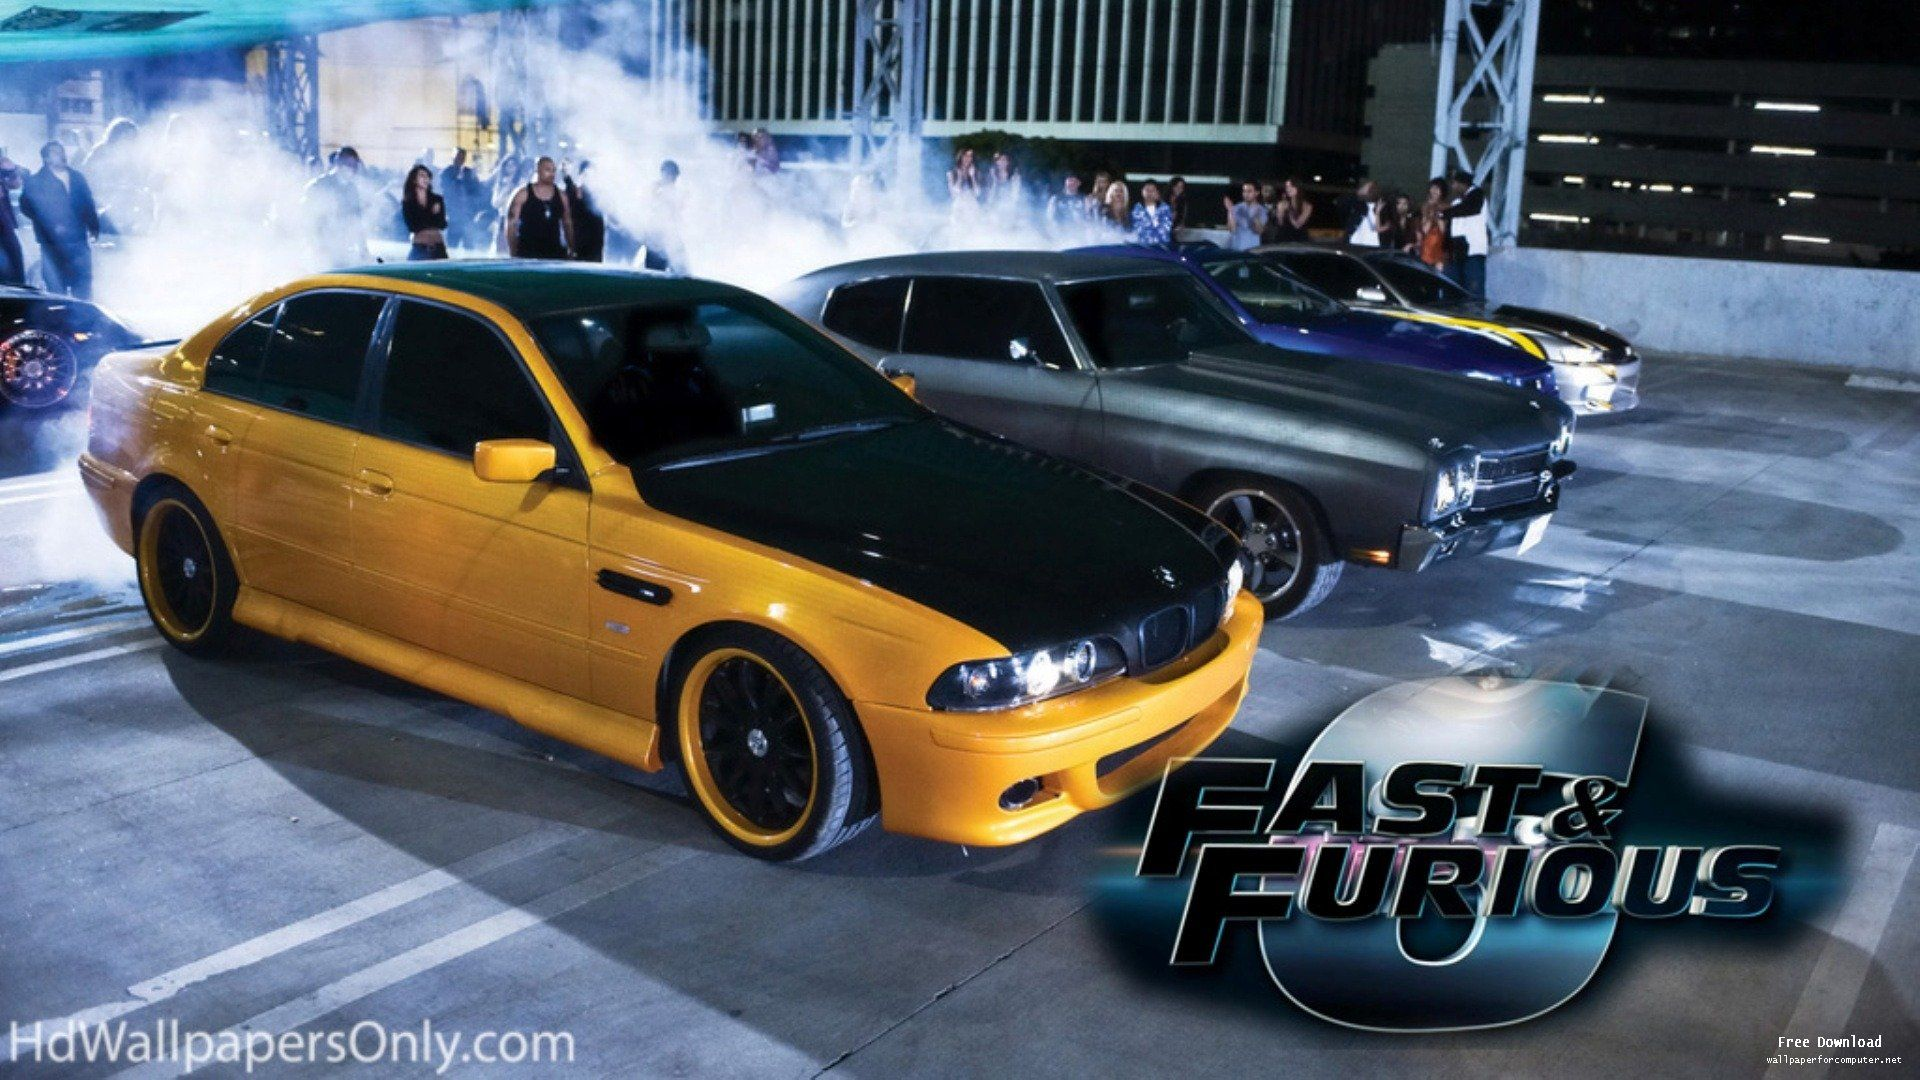 download fast and furious 7 car wallpapers hd gallery. Black Bedroom Furniture Sets. Home Design Ideas